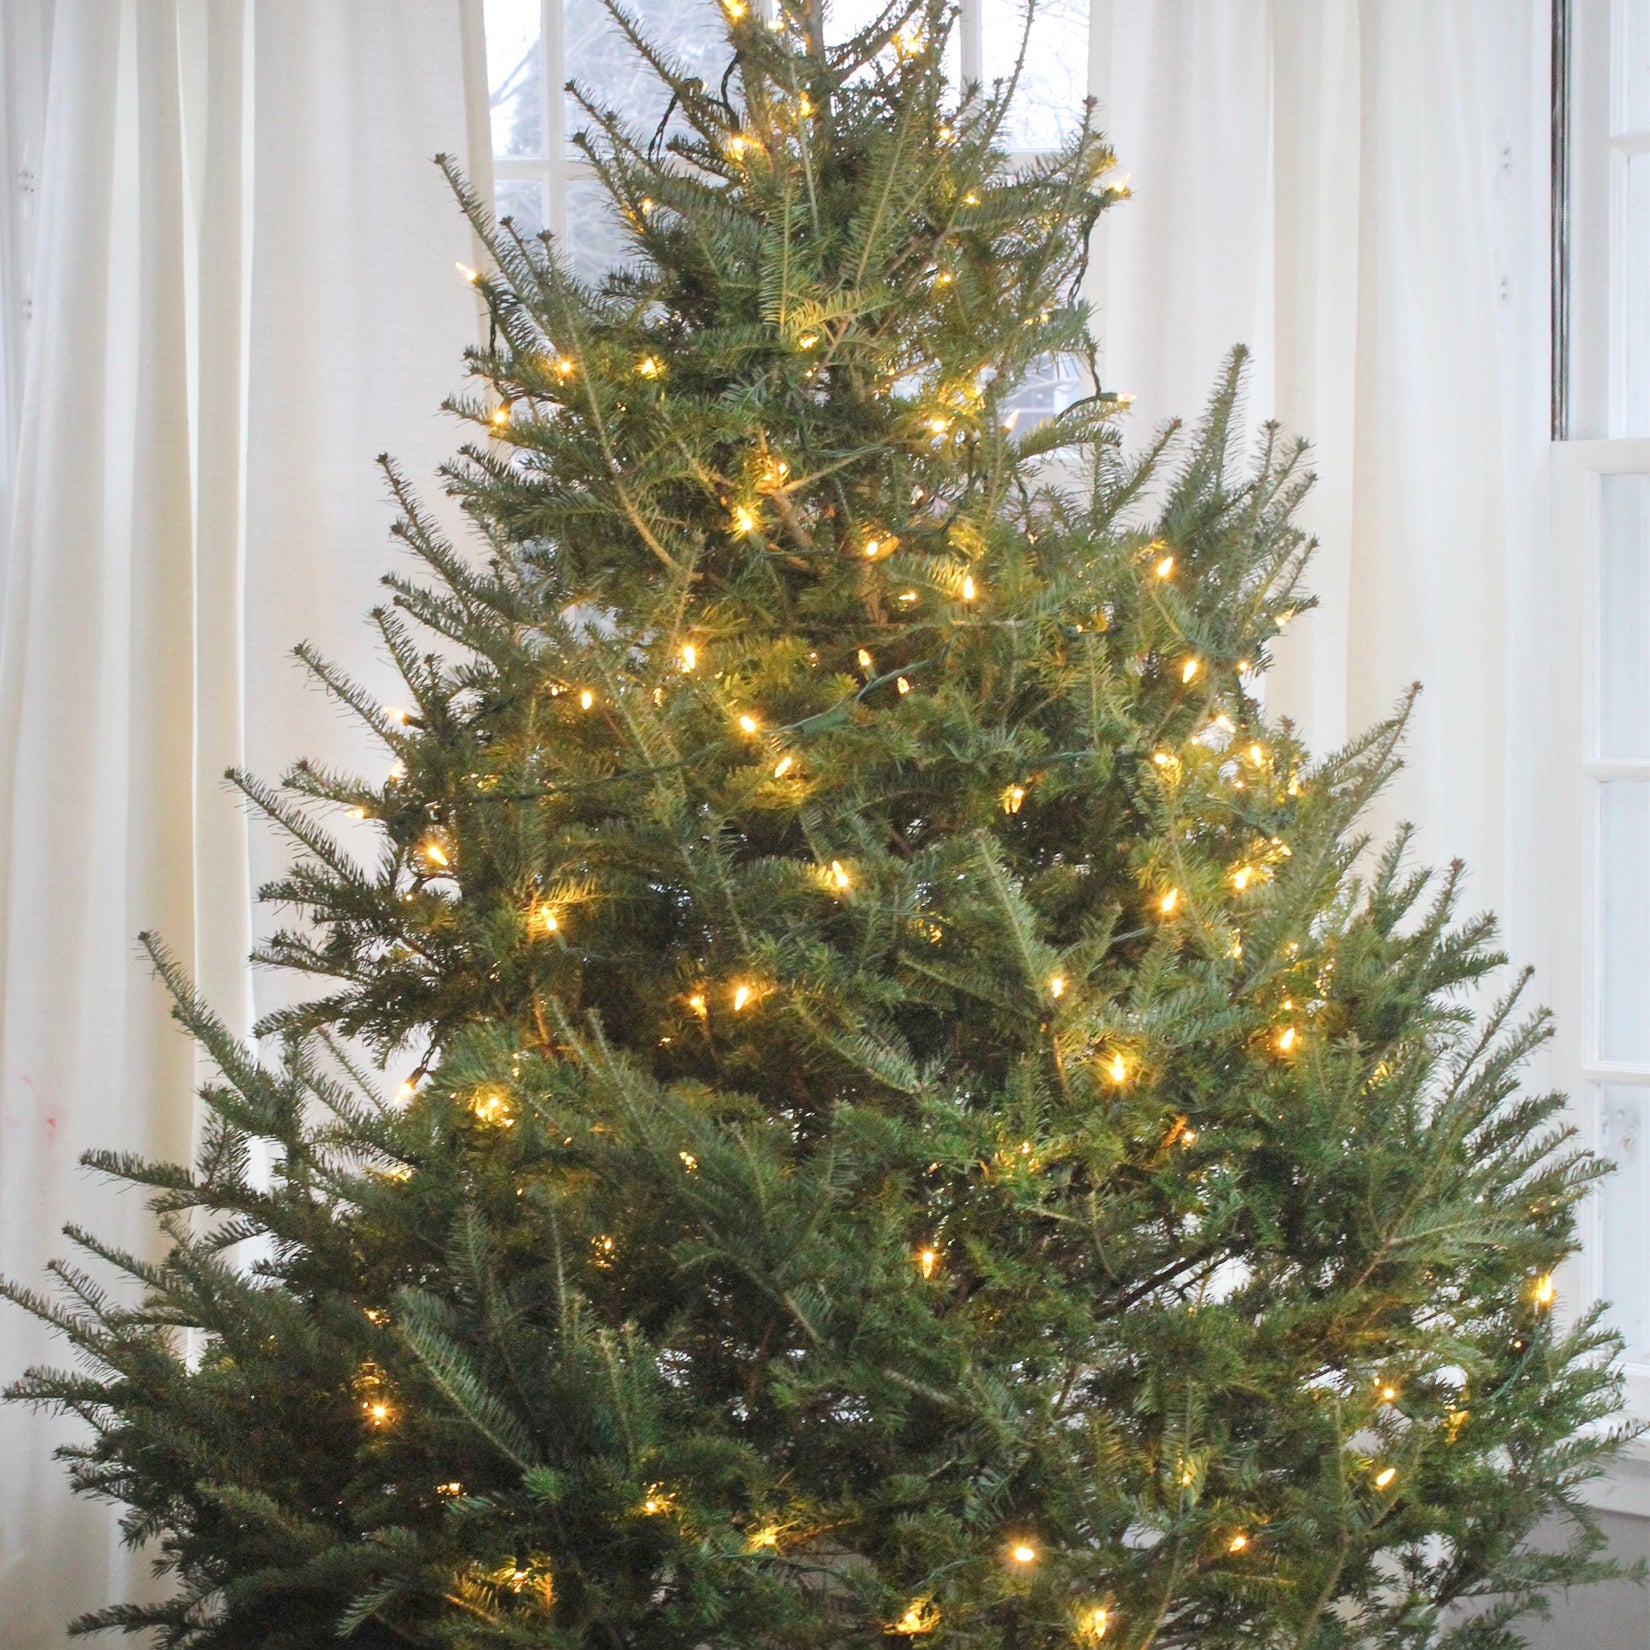 How to Pick the Right Christmas Tree